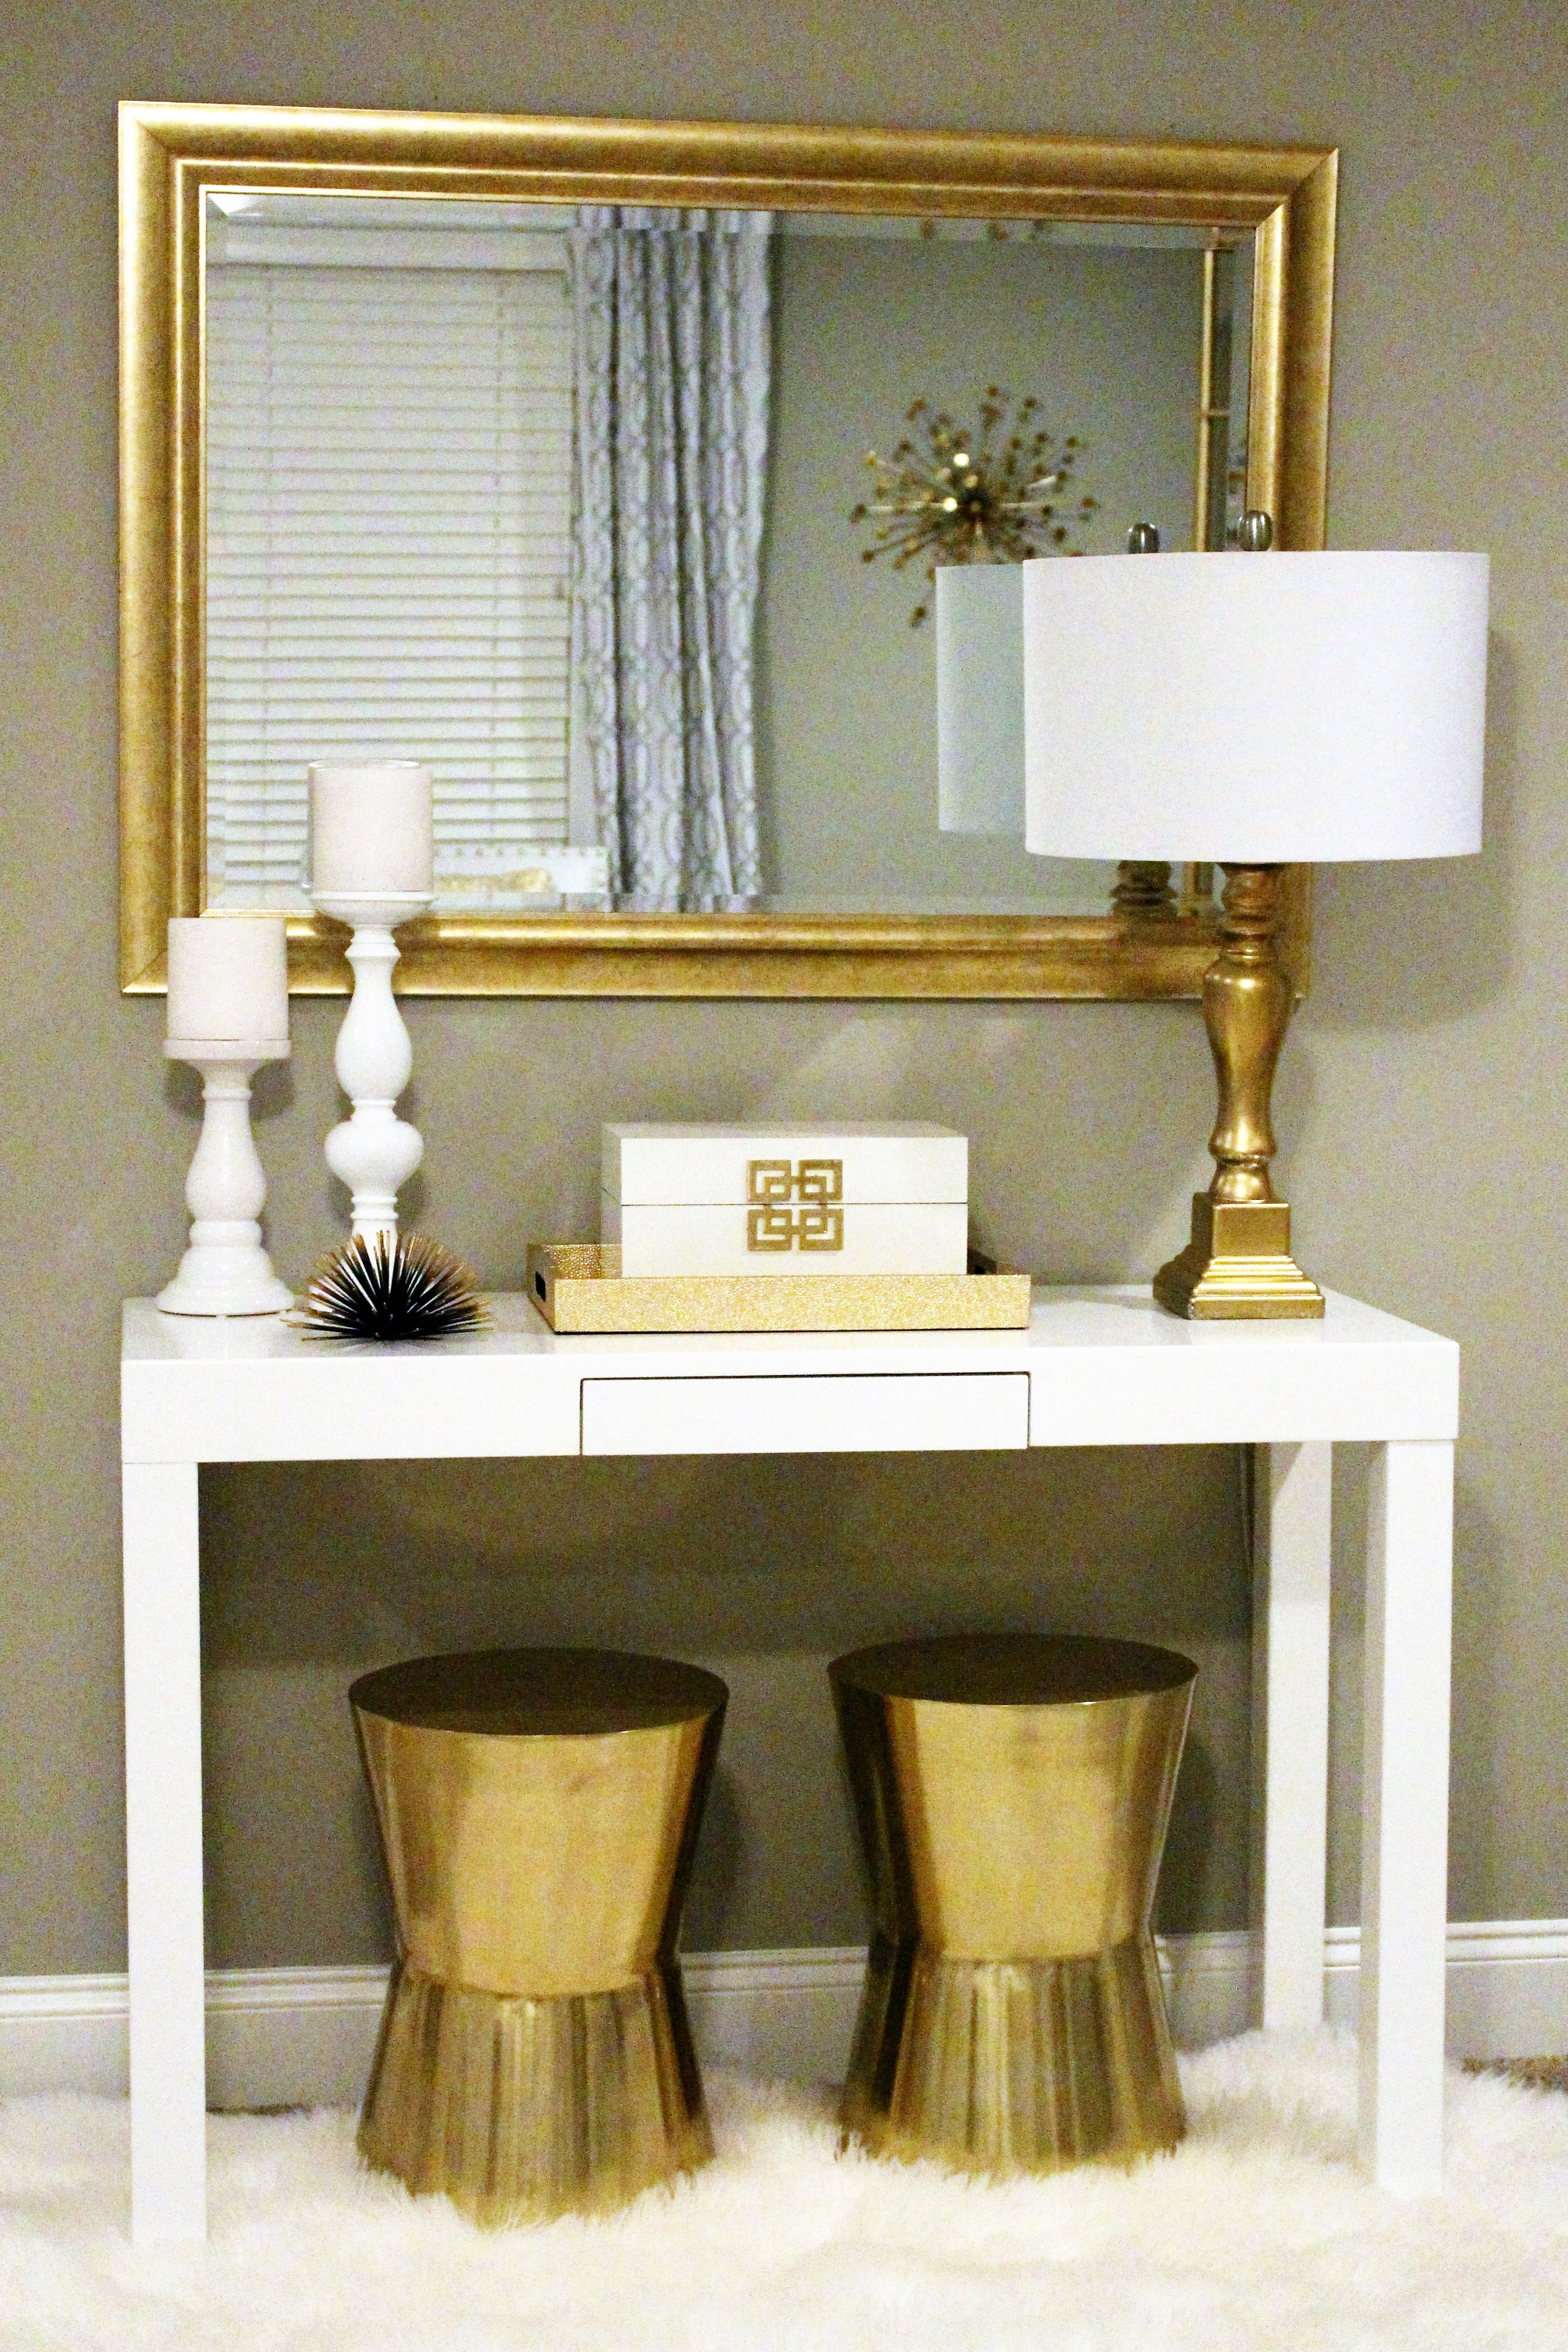 How To Style A Console Table Or Shelf – Intended For Switch Console Tables (View 10 of 20)